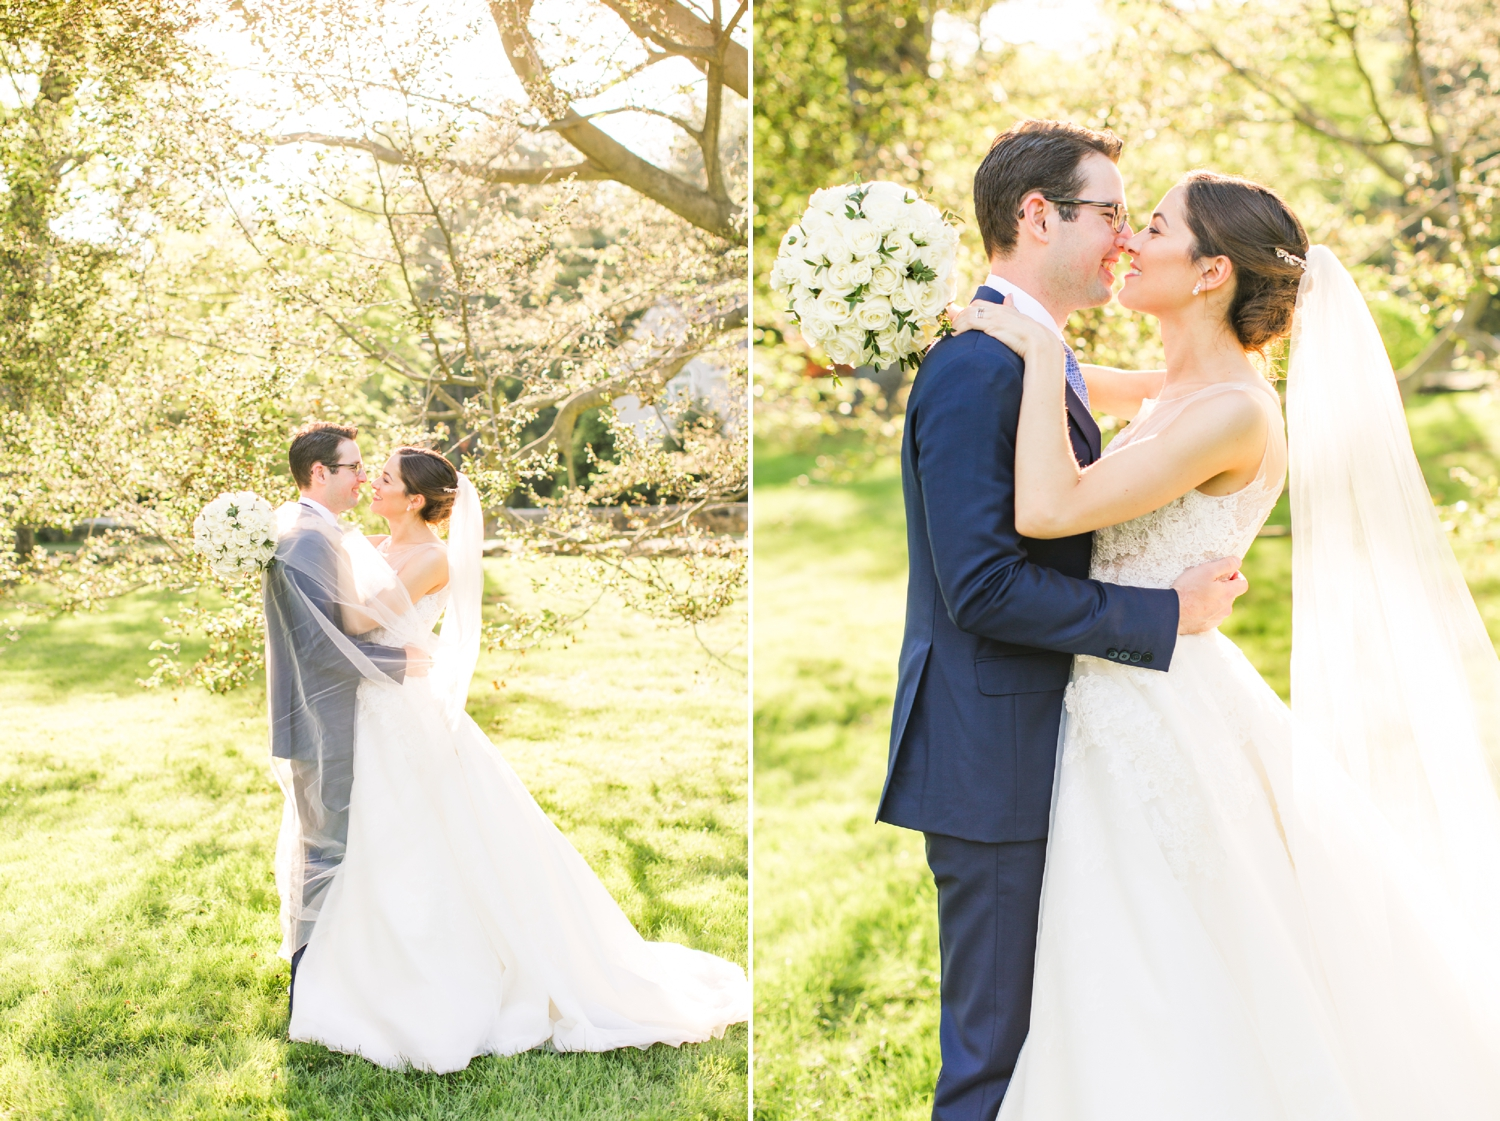 dca-meadowlands-wedding-darien-connecticut-photographer-shaina-lee-photography-photo